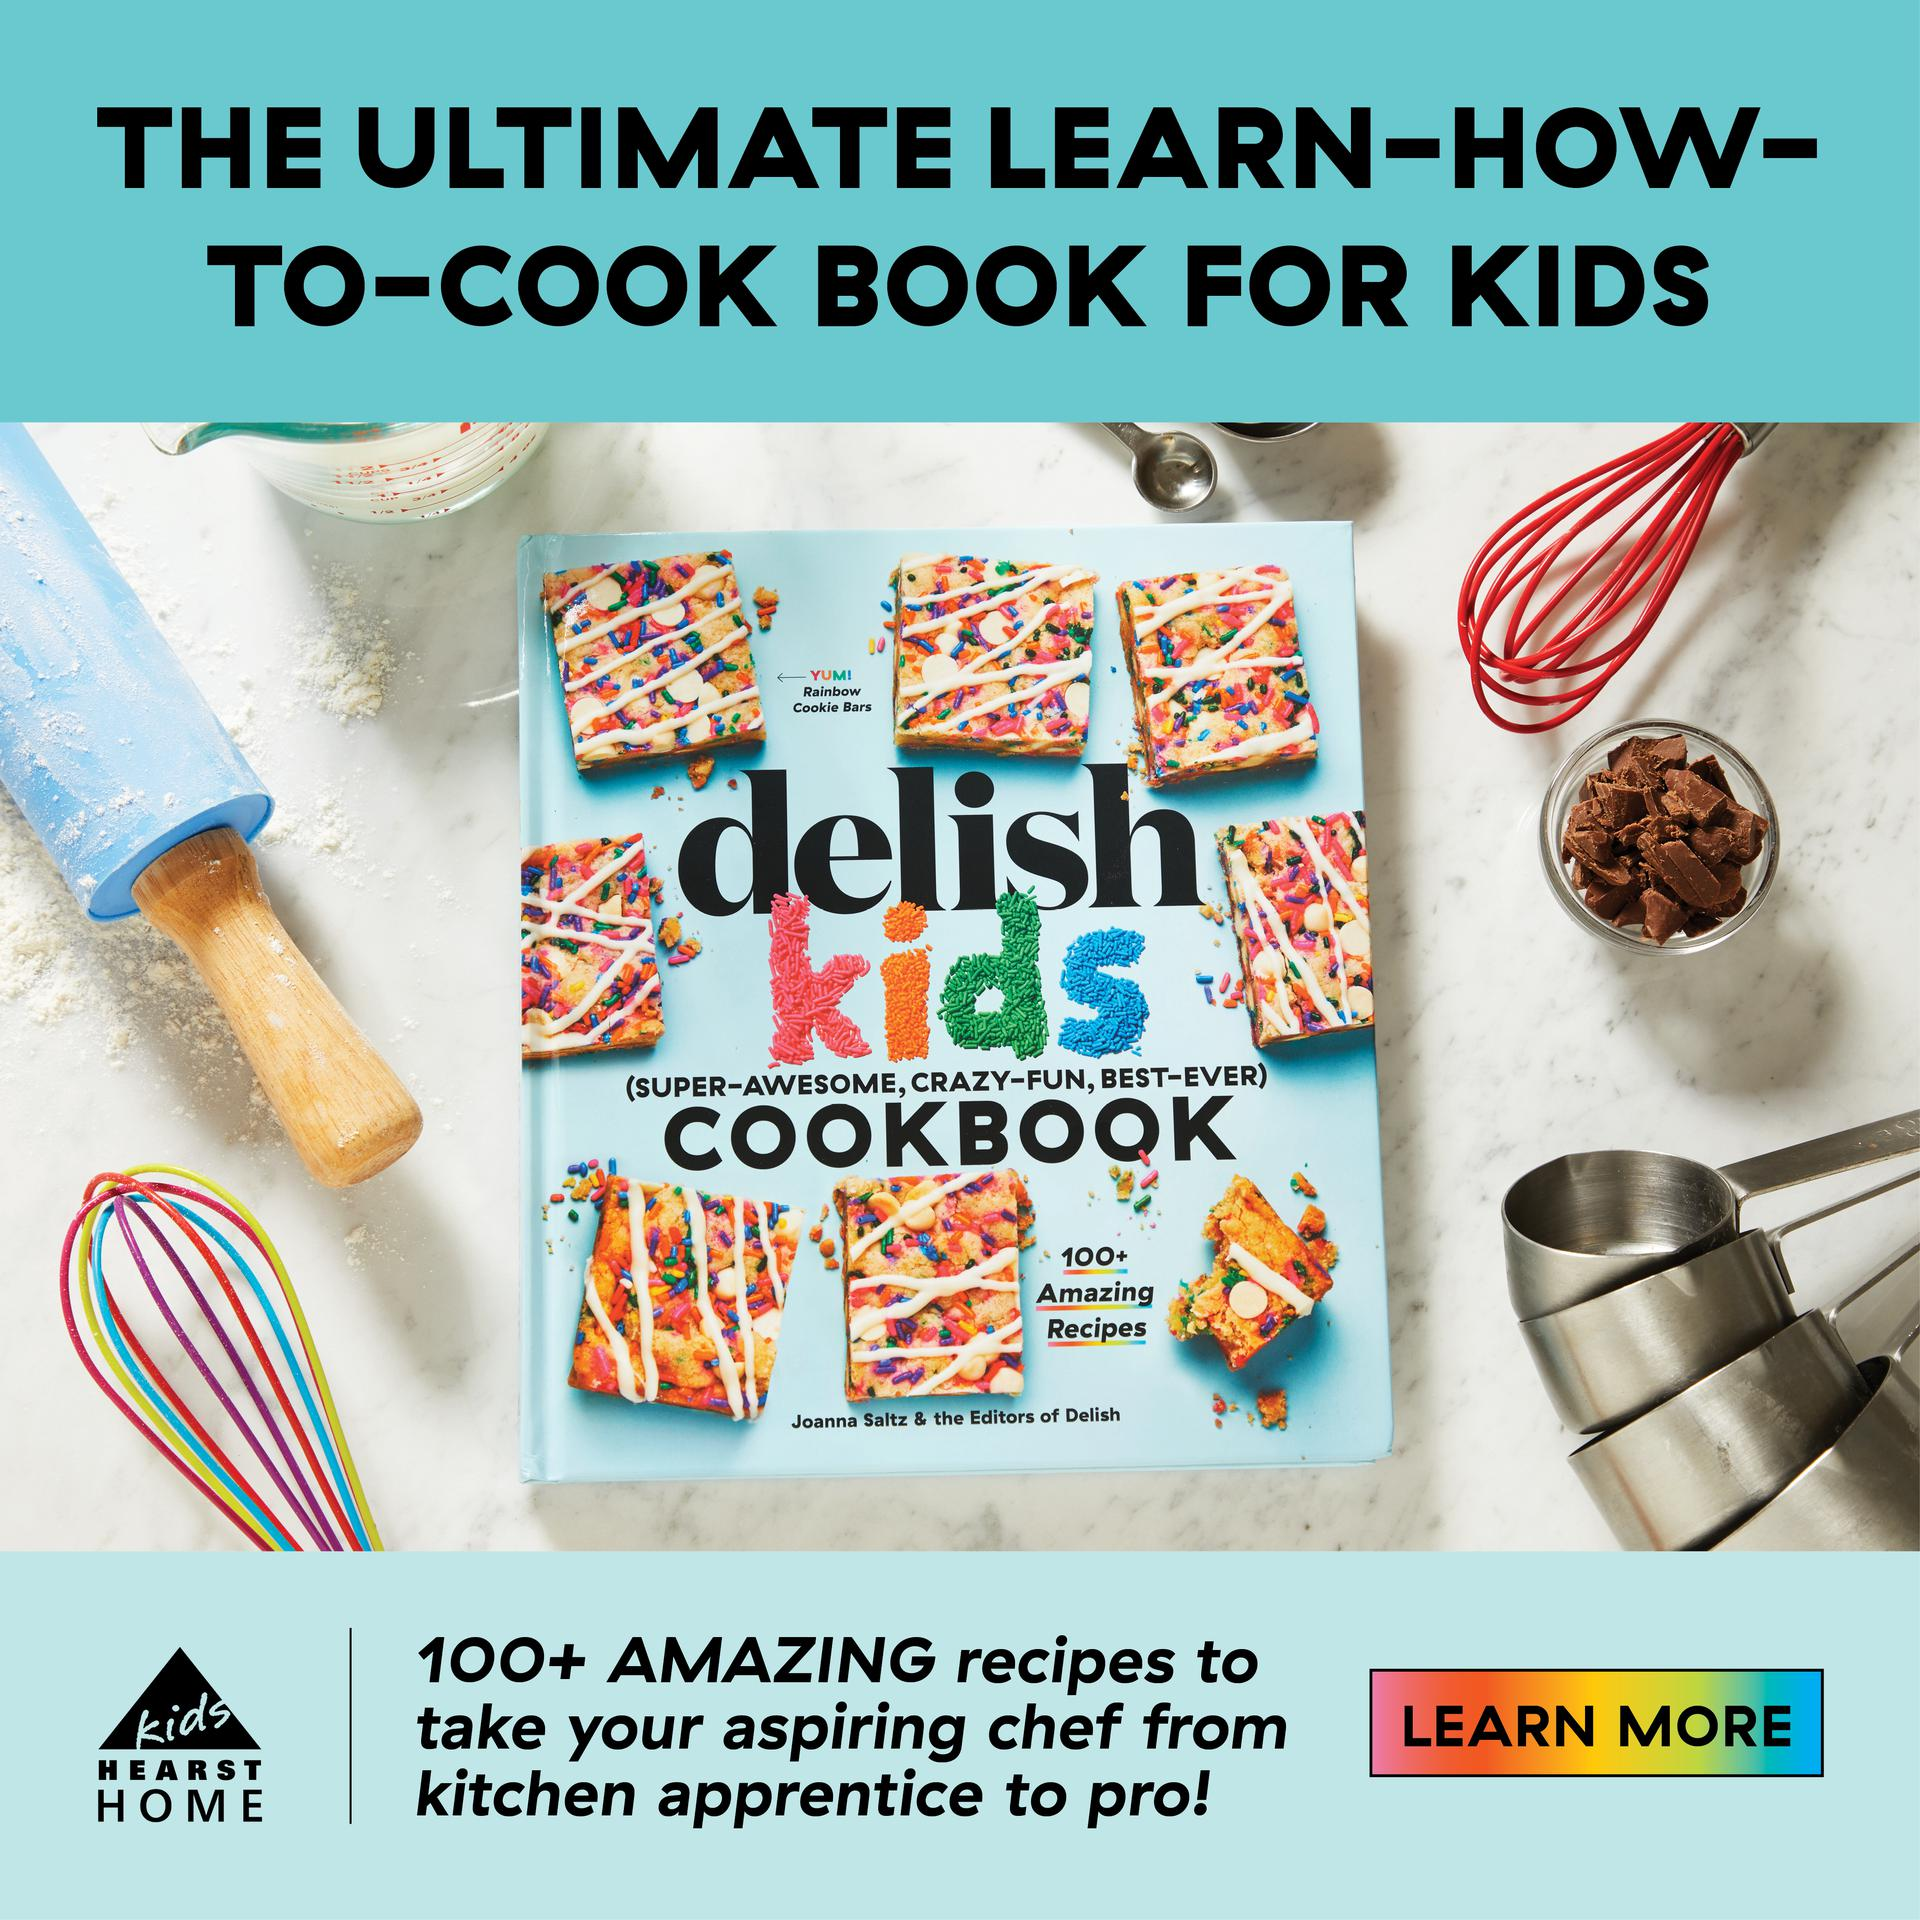 Anyone can be a great cook! Filled with more than 100 easy-to-follow recipes, the Delish Kids Cookbook will make cooking so much fun for young chefs.